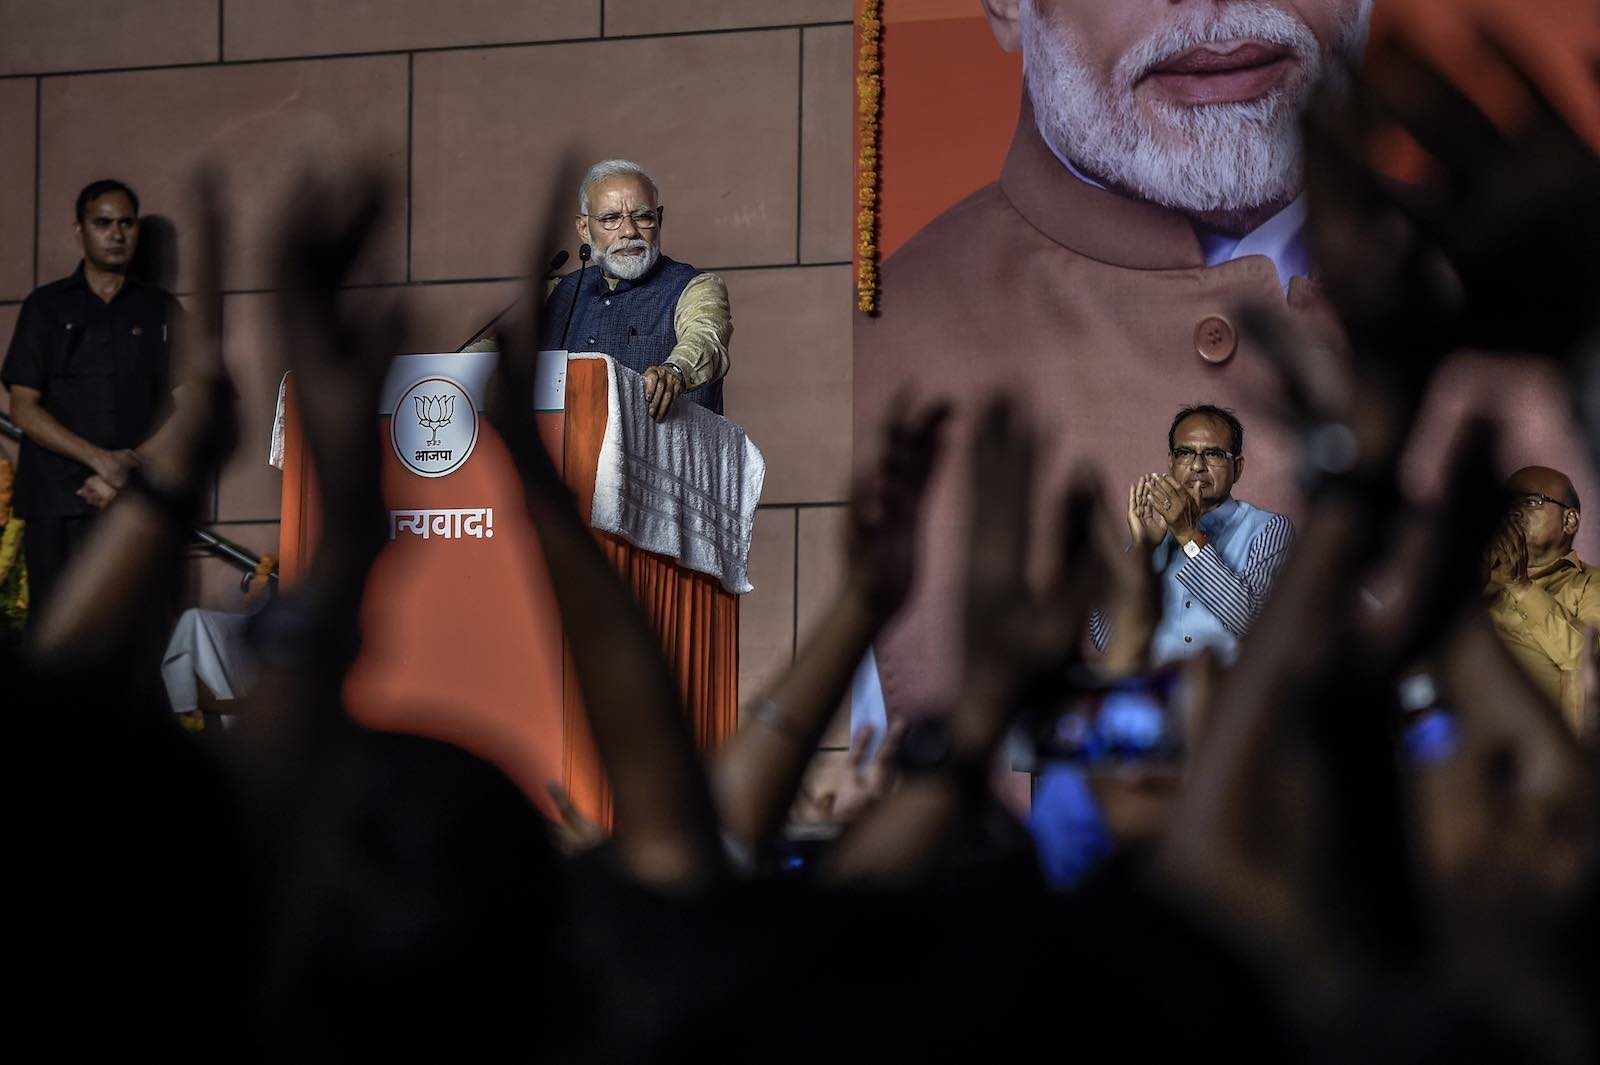 Celebrating a big win - Narendra Modi, India's Prime Minister (Photo: Atul Loke/Getty)